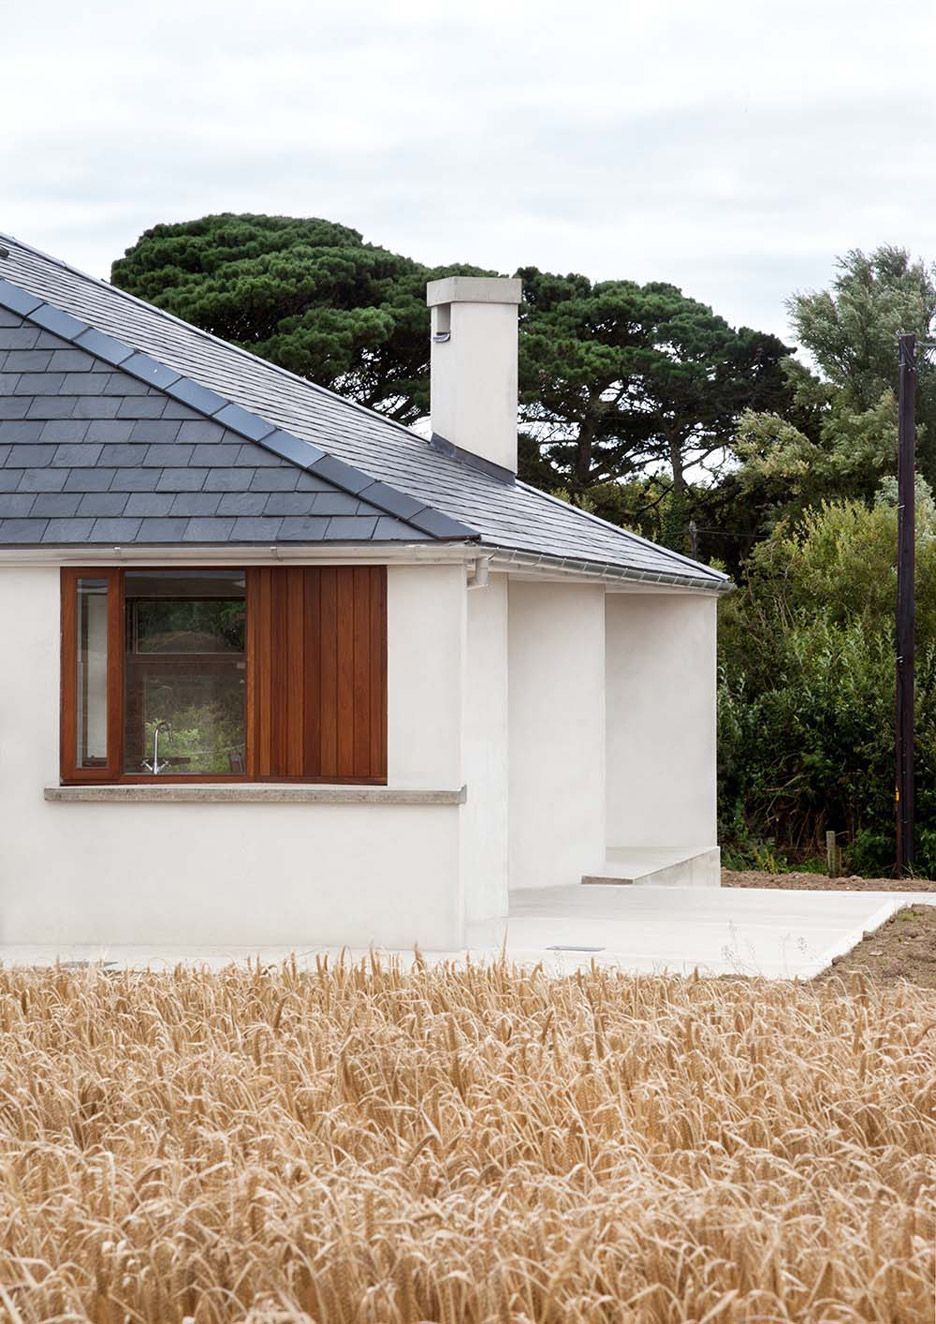 Occupying A Large Site That Was Previously Farmland This House Features Lime Rendered Walls And A Pitched Roof House Roof Pyramid Roof Roof Design